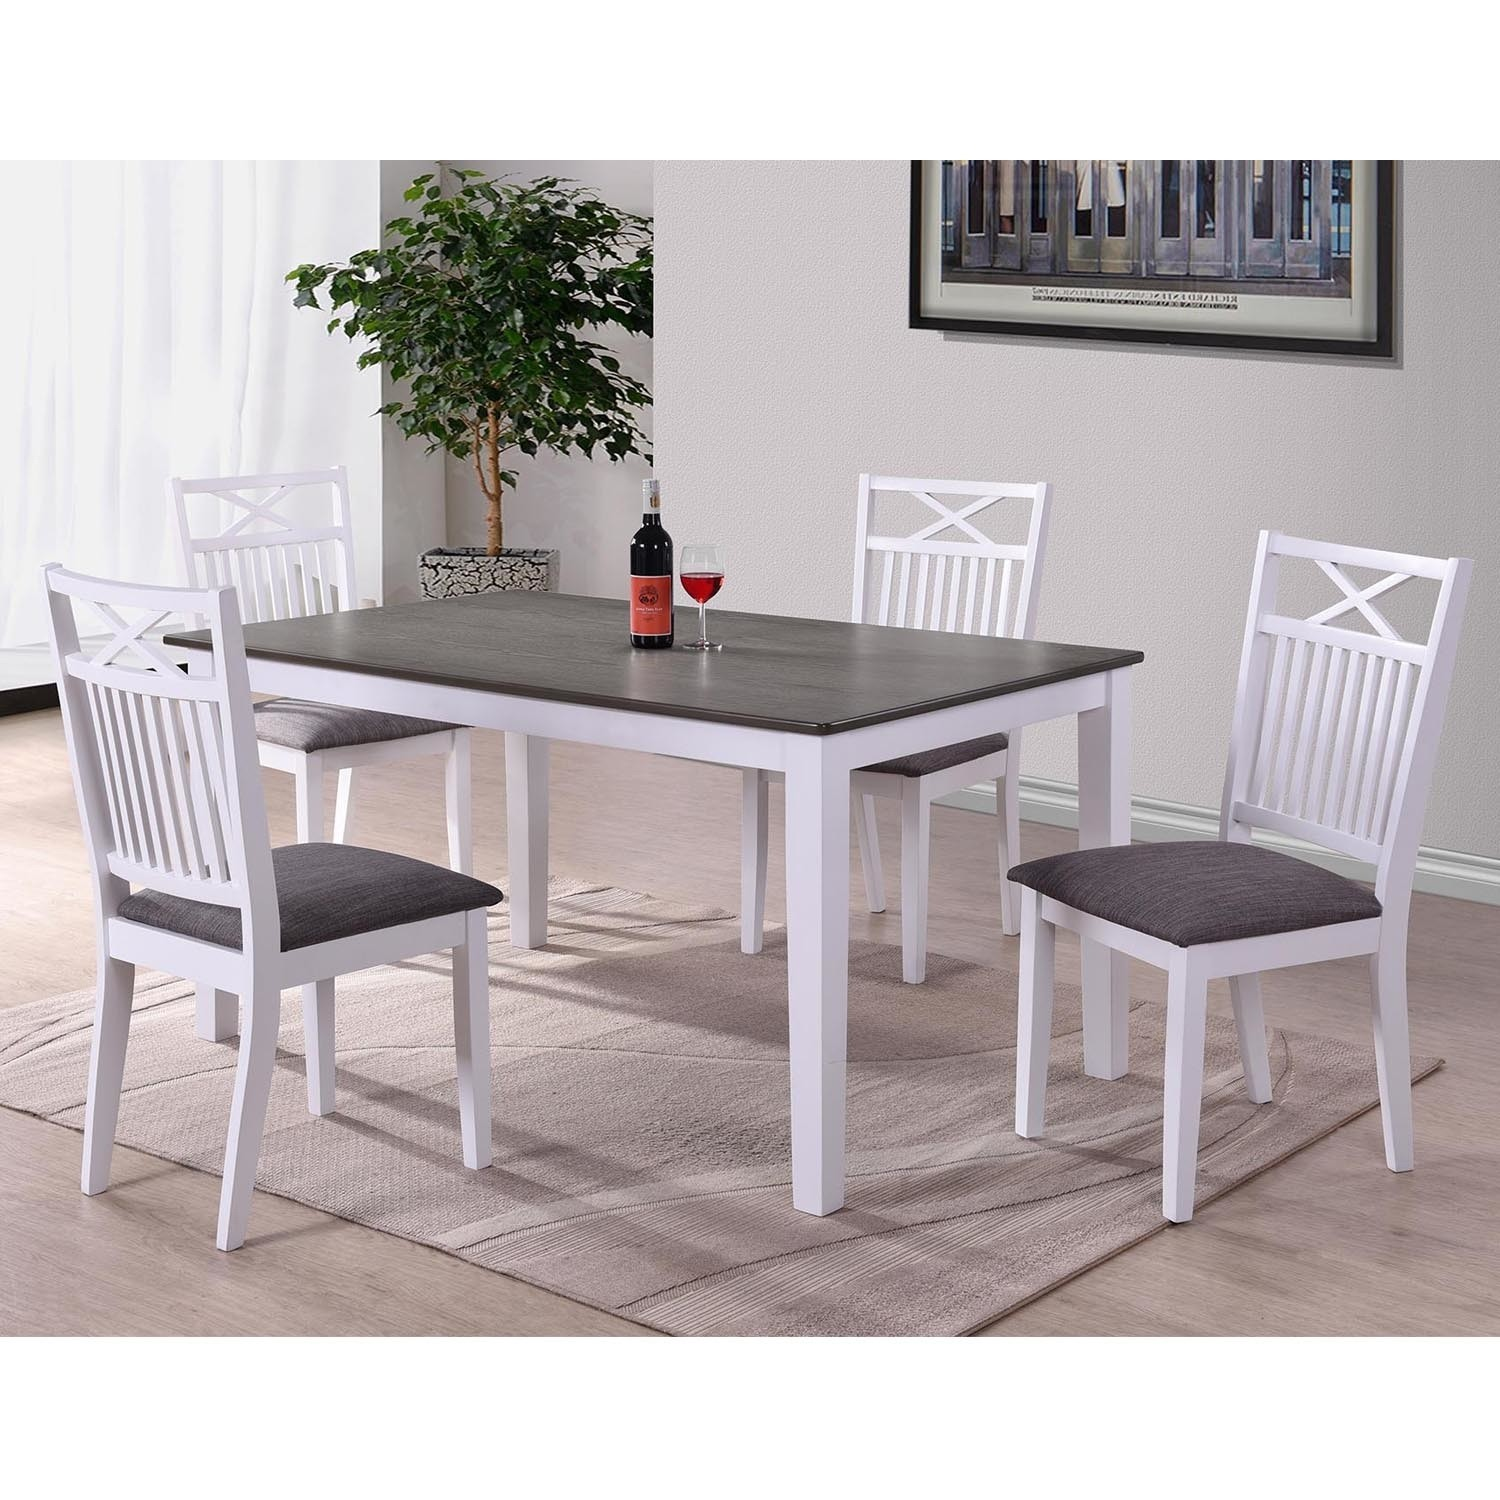 Melbourne Island Two Tone Rectangular Dining Table In White Dark Wood Furniture123